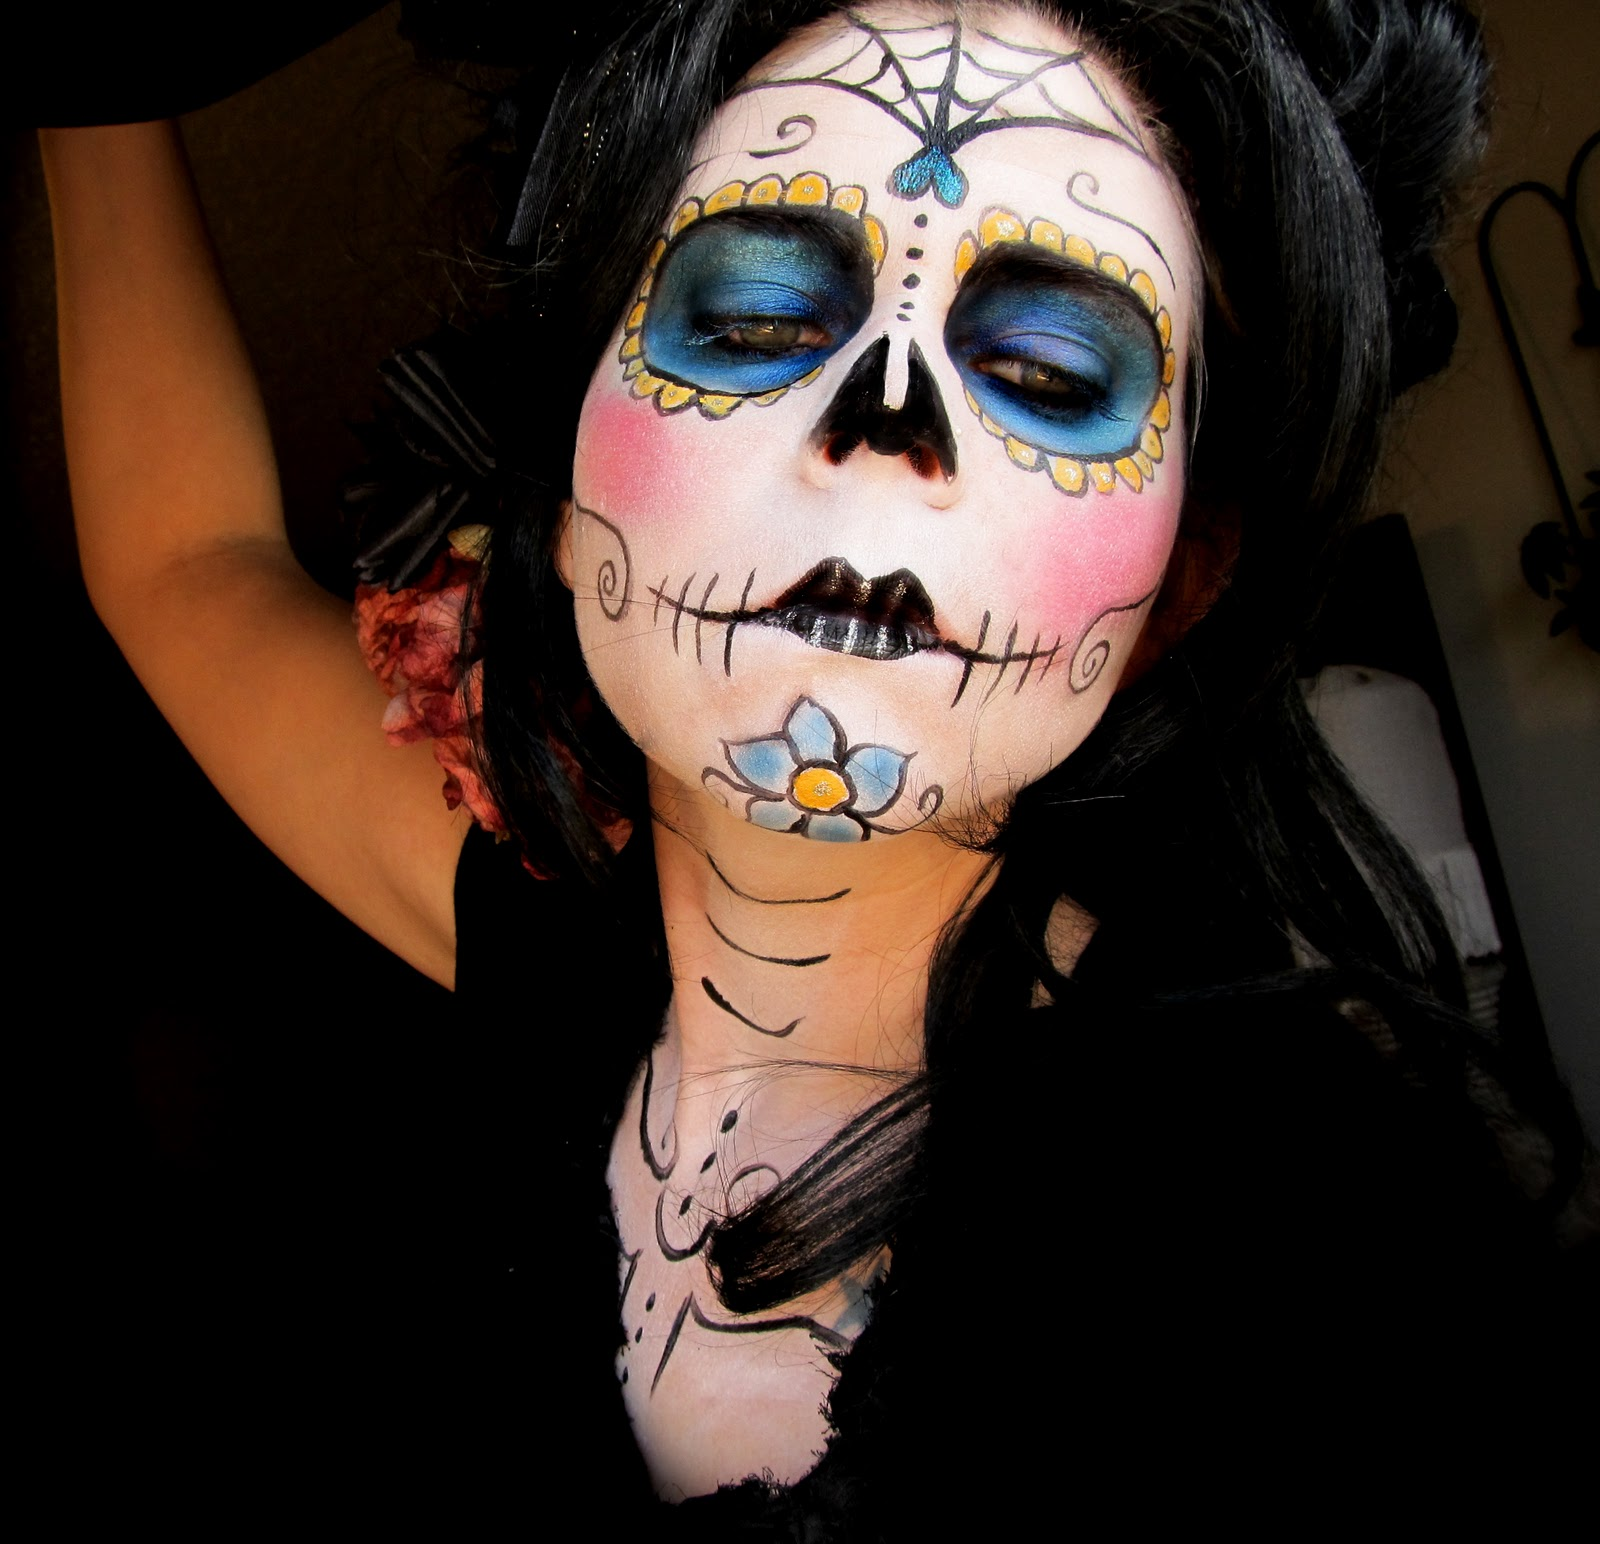 day of the dead makeup couple - photo #39